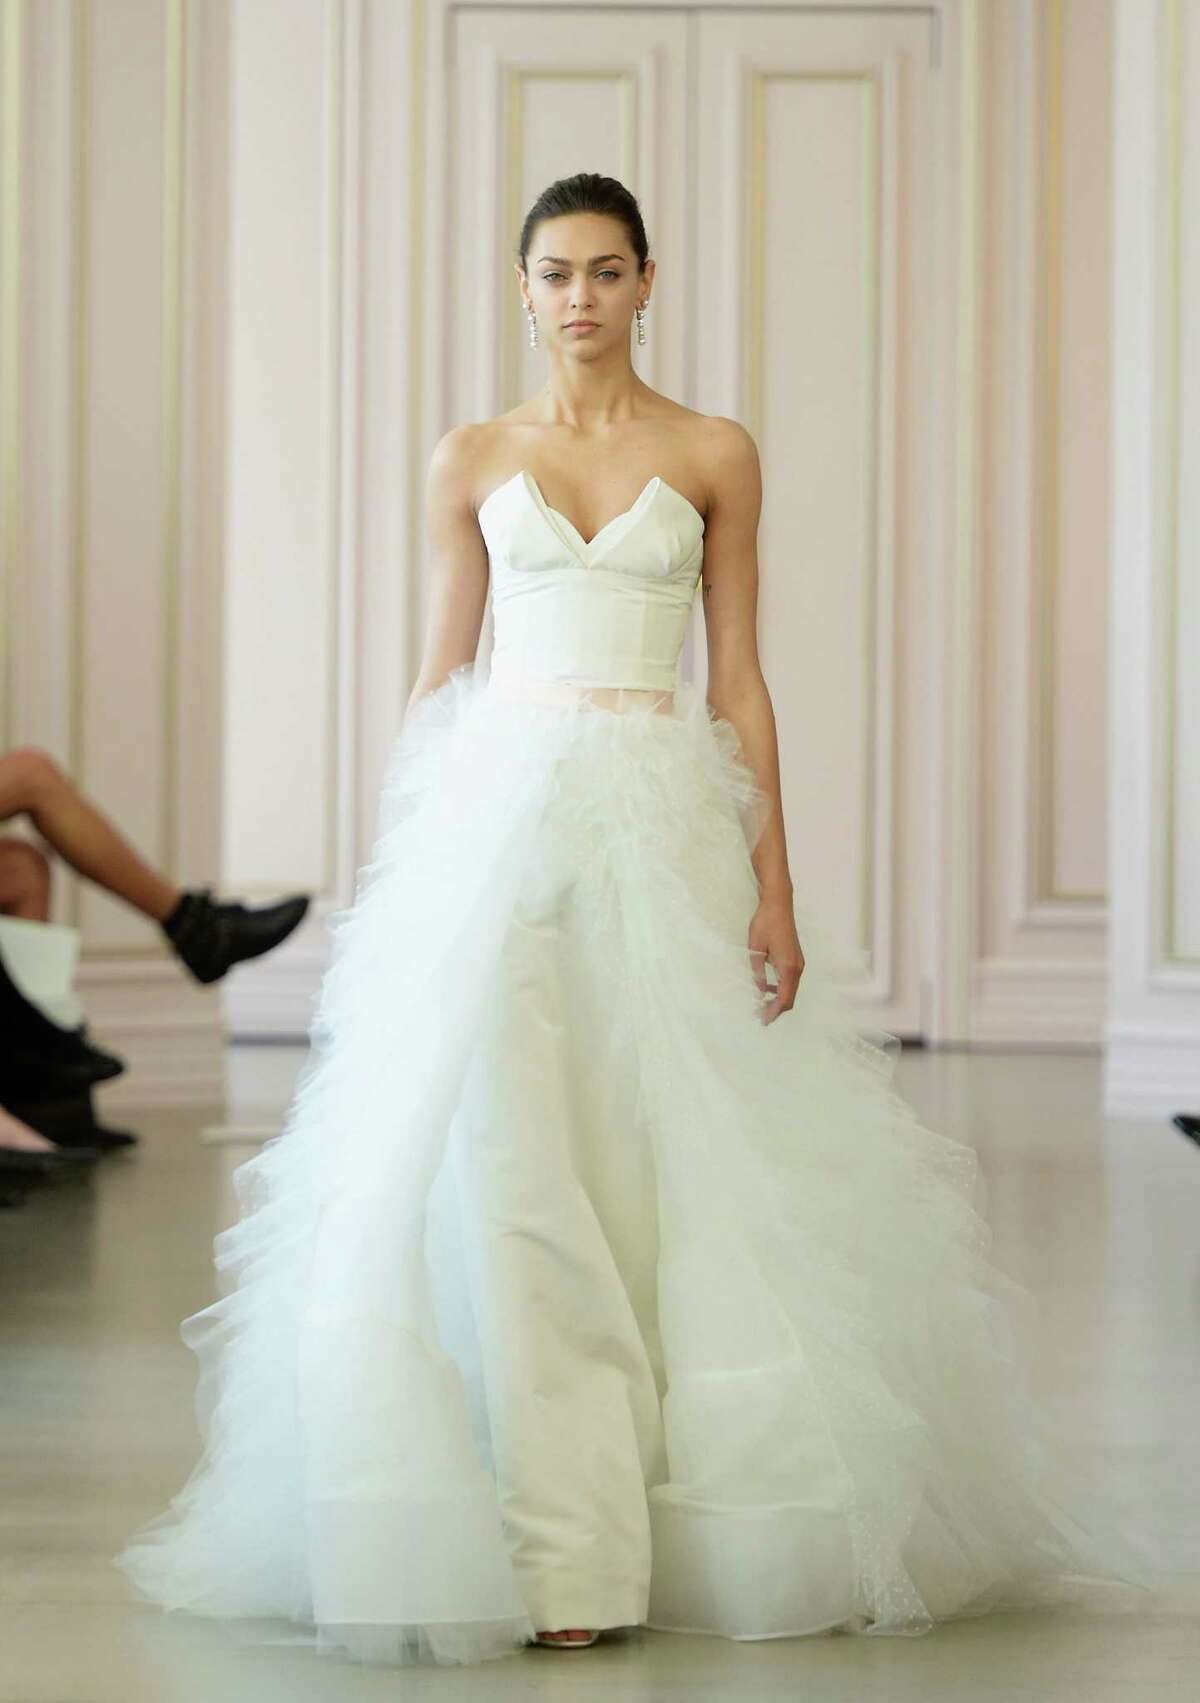 Google confirms what many women well know: Tulle skirts are one of this spring's hottest fashion trends. Here's a look at how tulle has been represented on runways and red carpets in the past year: A model walks the runway at Oscar De La Renta Bridal Spring/Summer 2016 Runway Show at Oscar de la Renta Boutique on April 18, 2015 in New York City.